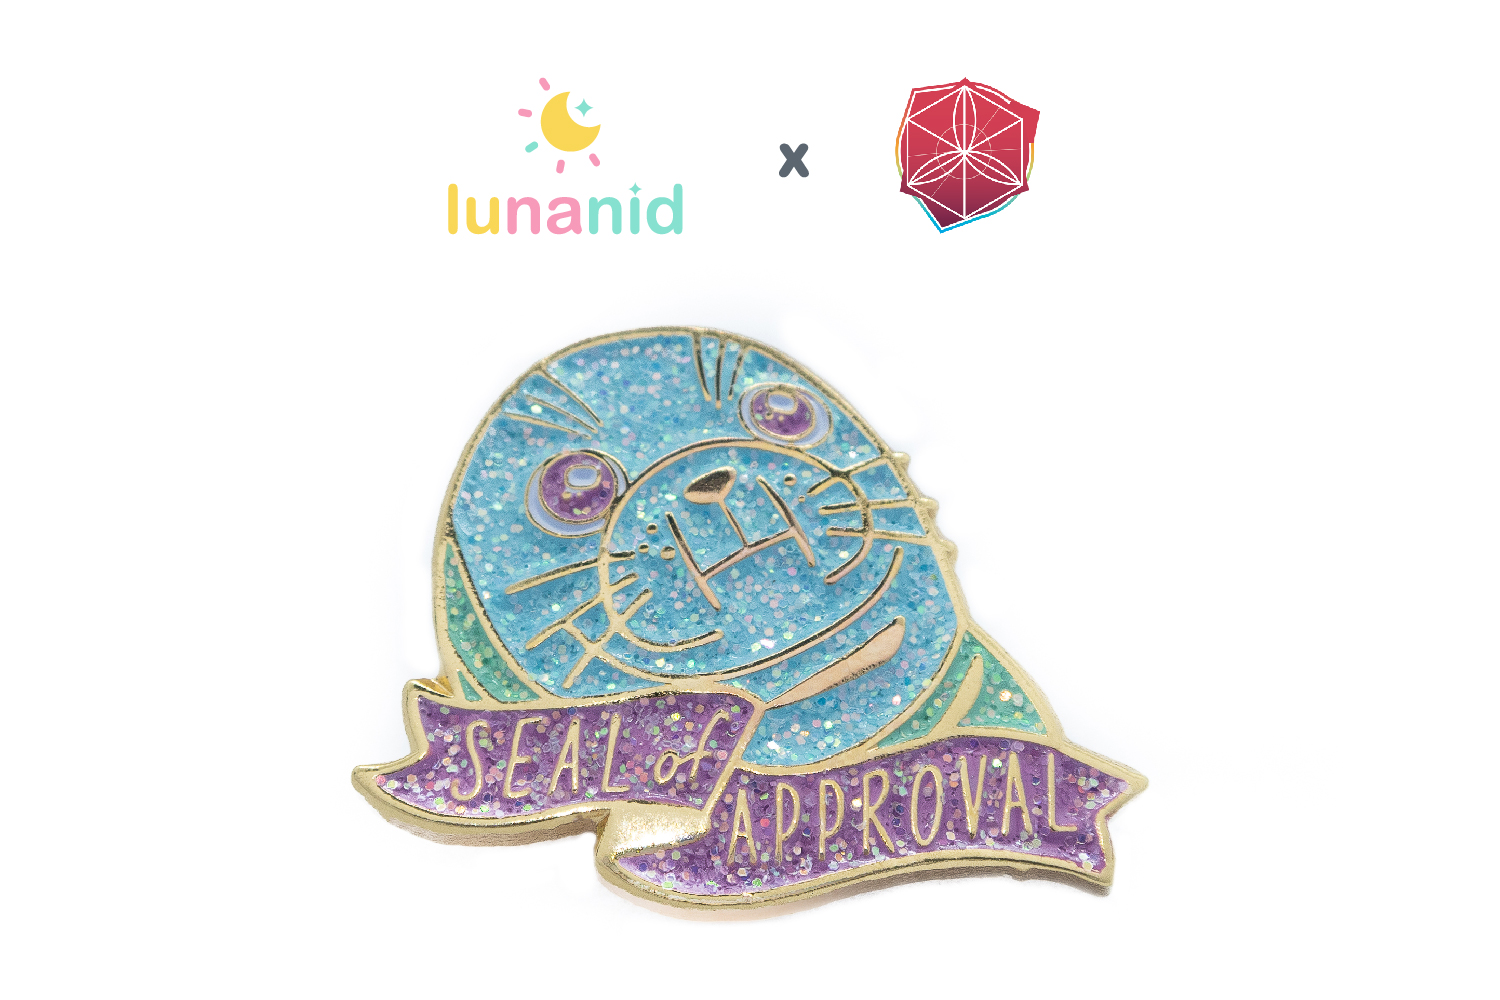 Seal of Approval Pin Photo resize-01